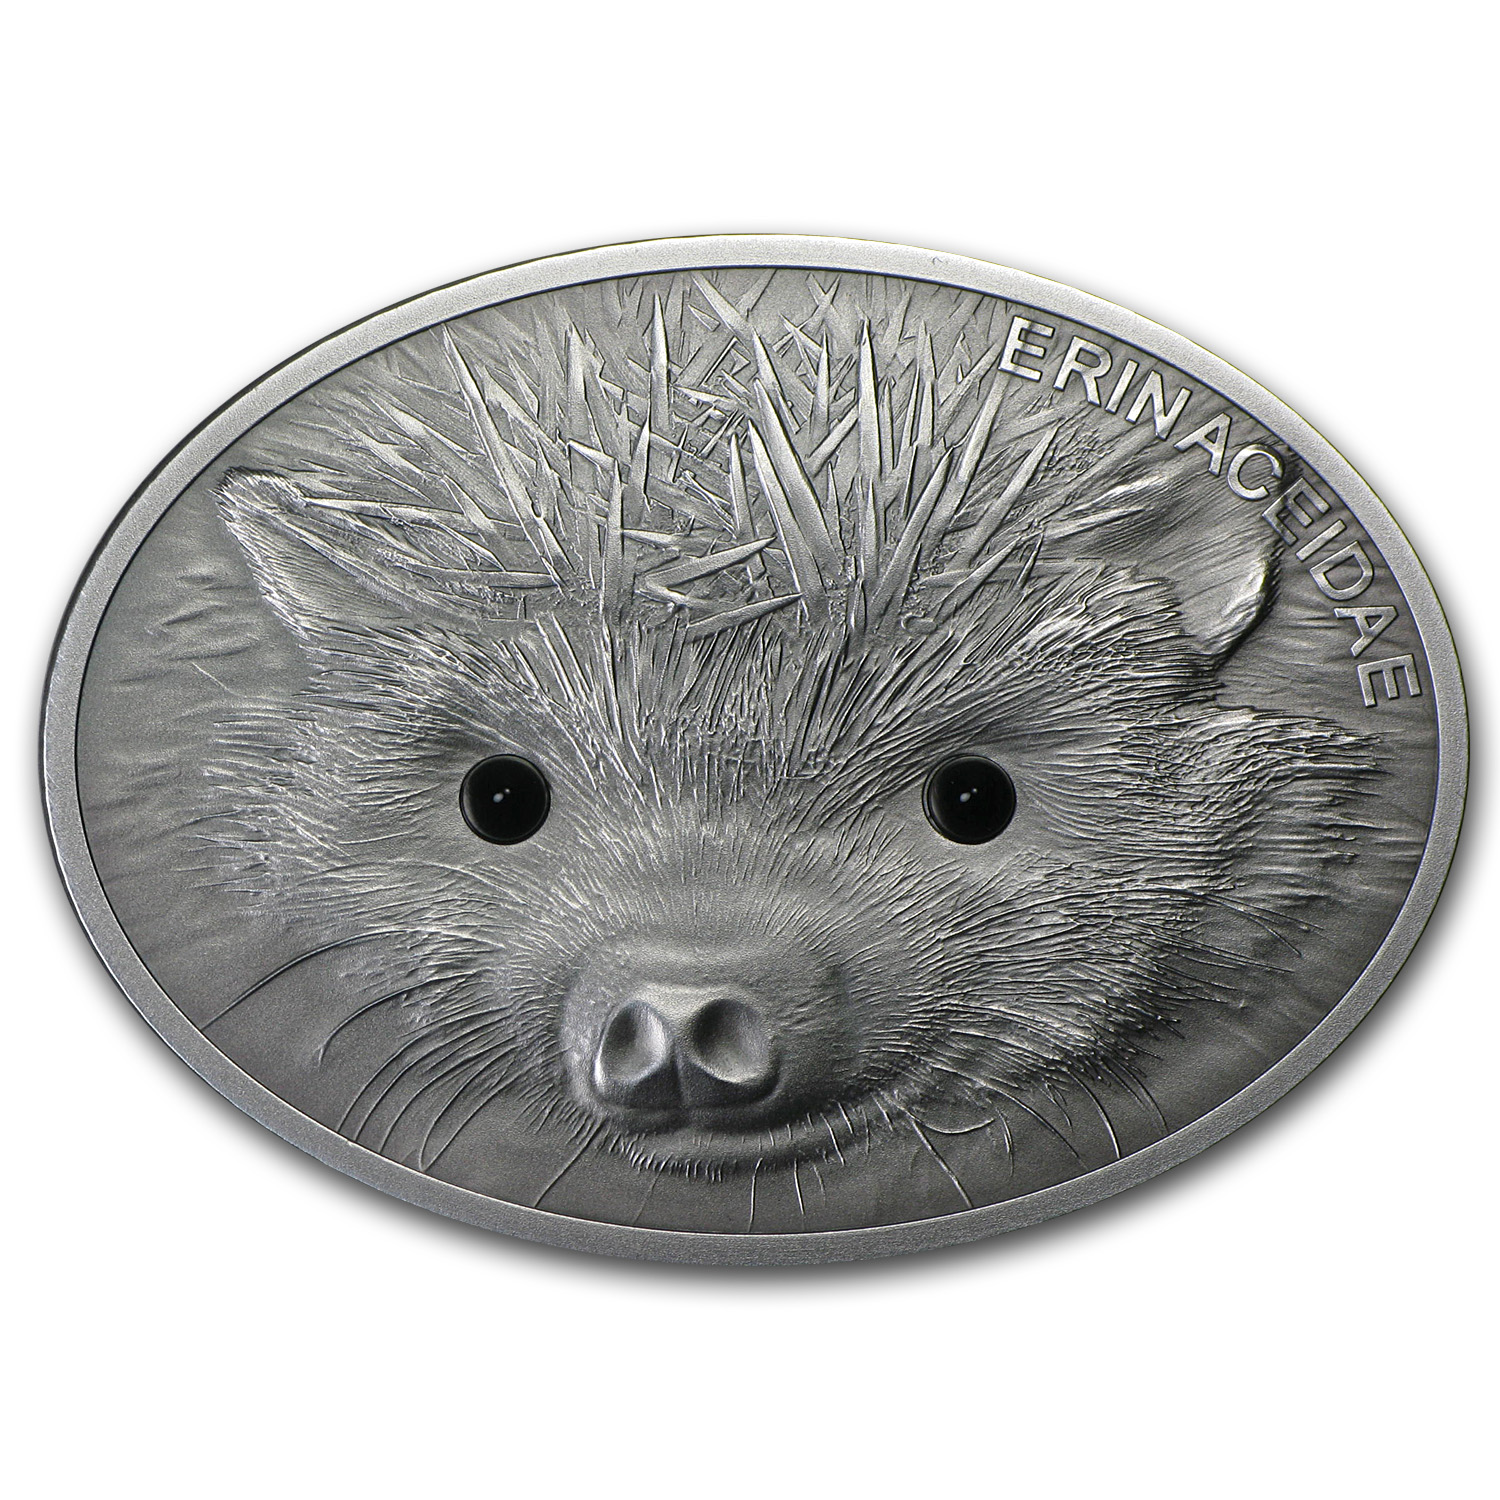 2013 Fiji 1 oz Silver $10 Fascinating Wildlife Hedgehog